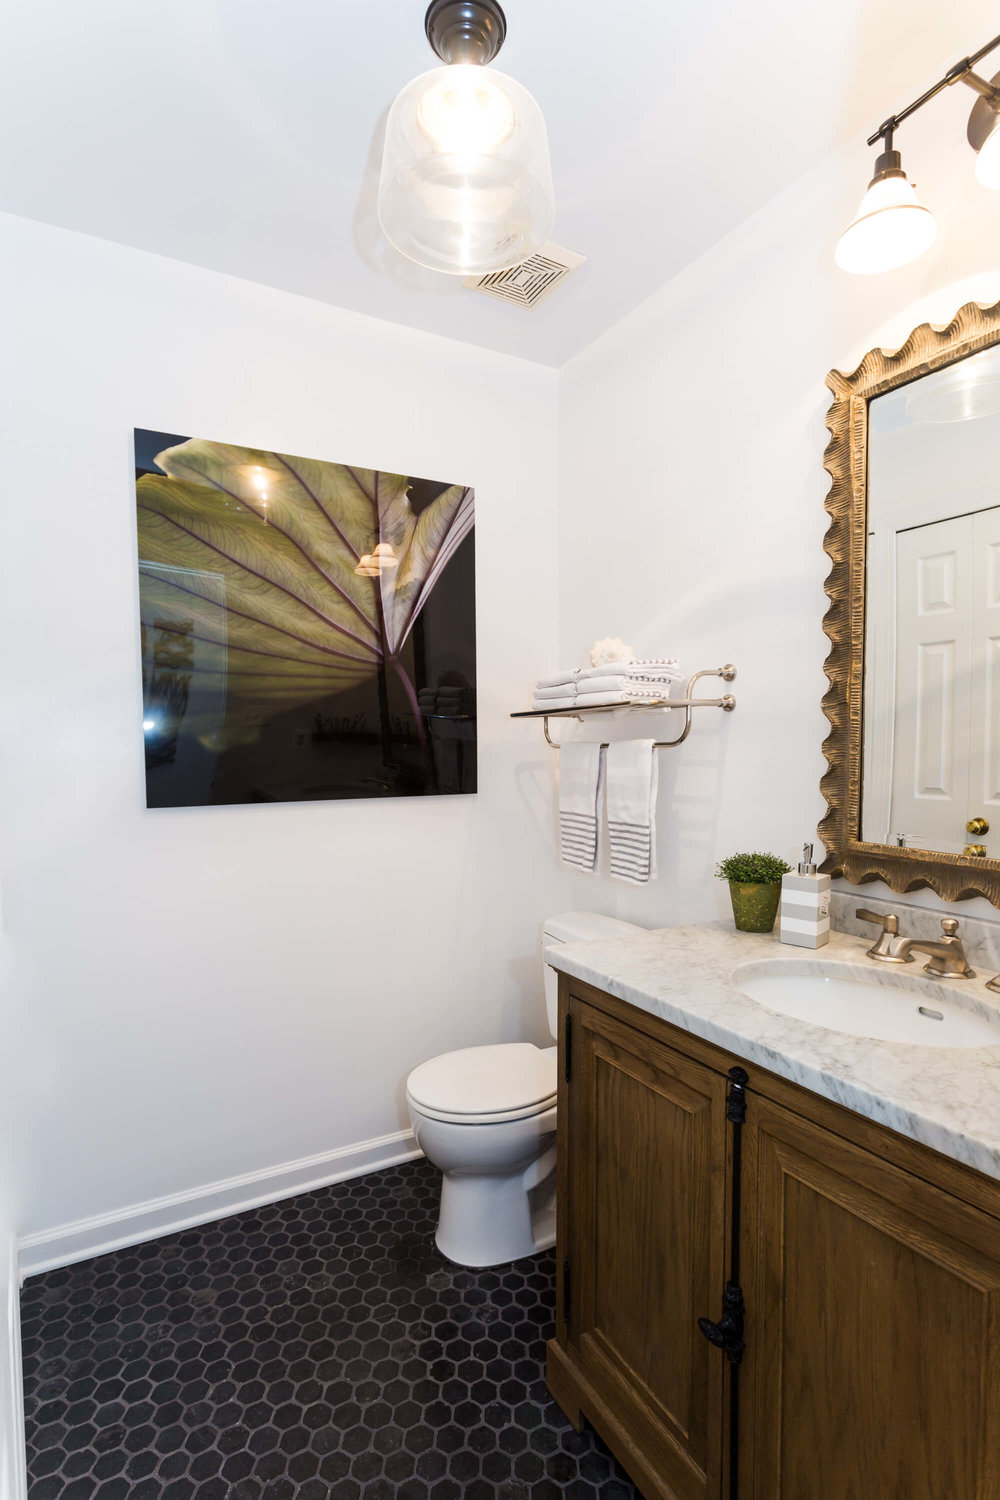 bathroom-interior-design-remodel-renovate-virginia-2.jpg